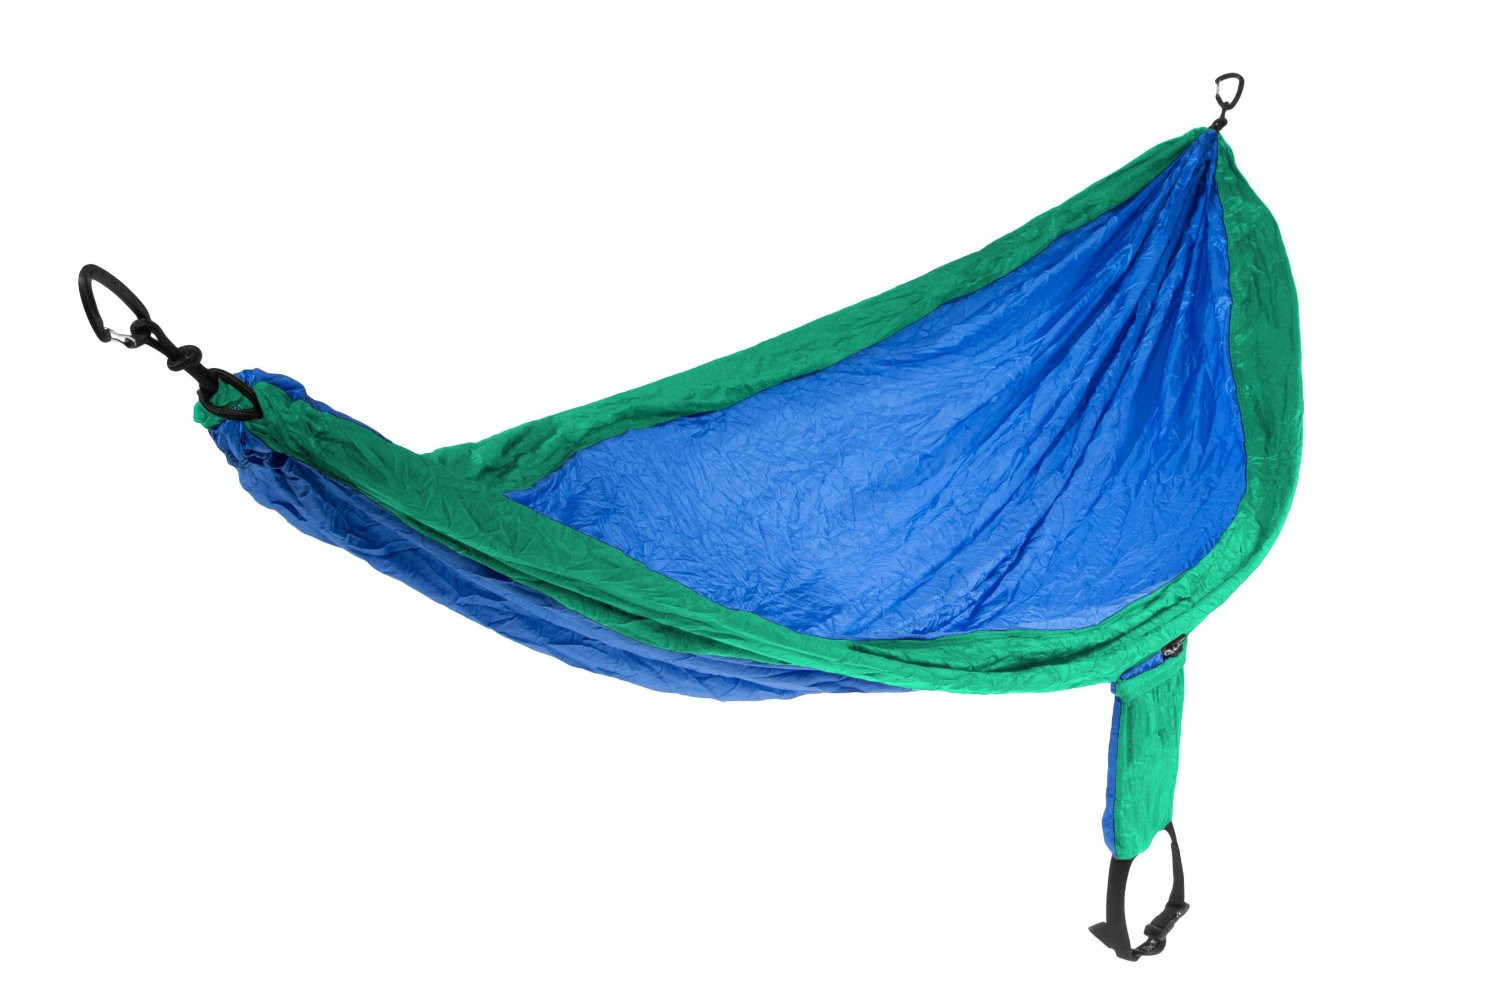 Carries Ultralight Portable Foldable Hammock Bundled with Carabiners